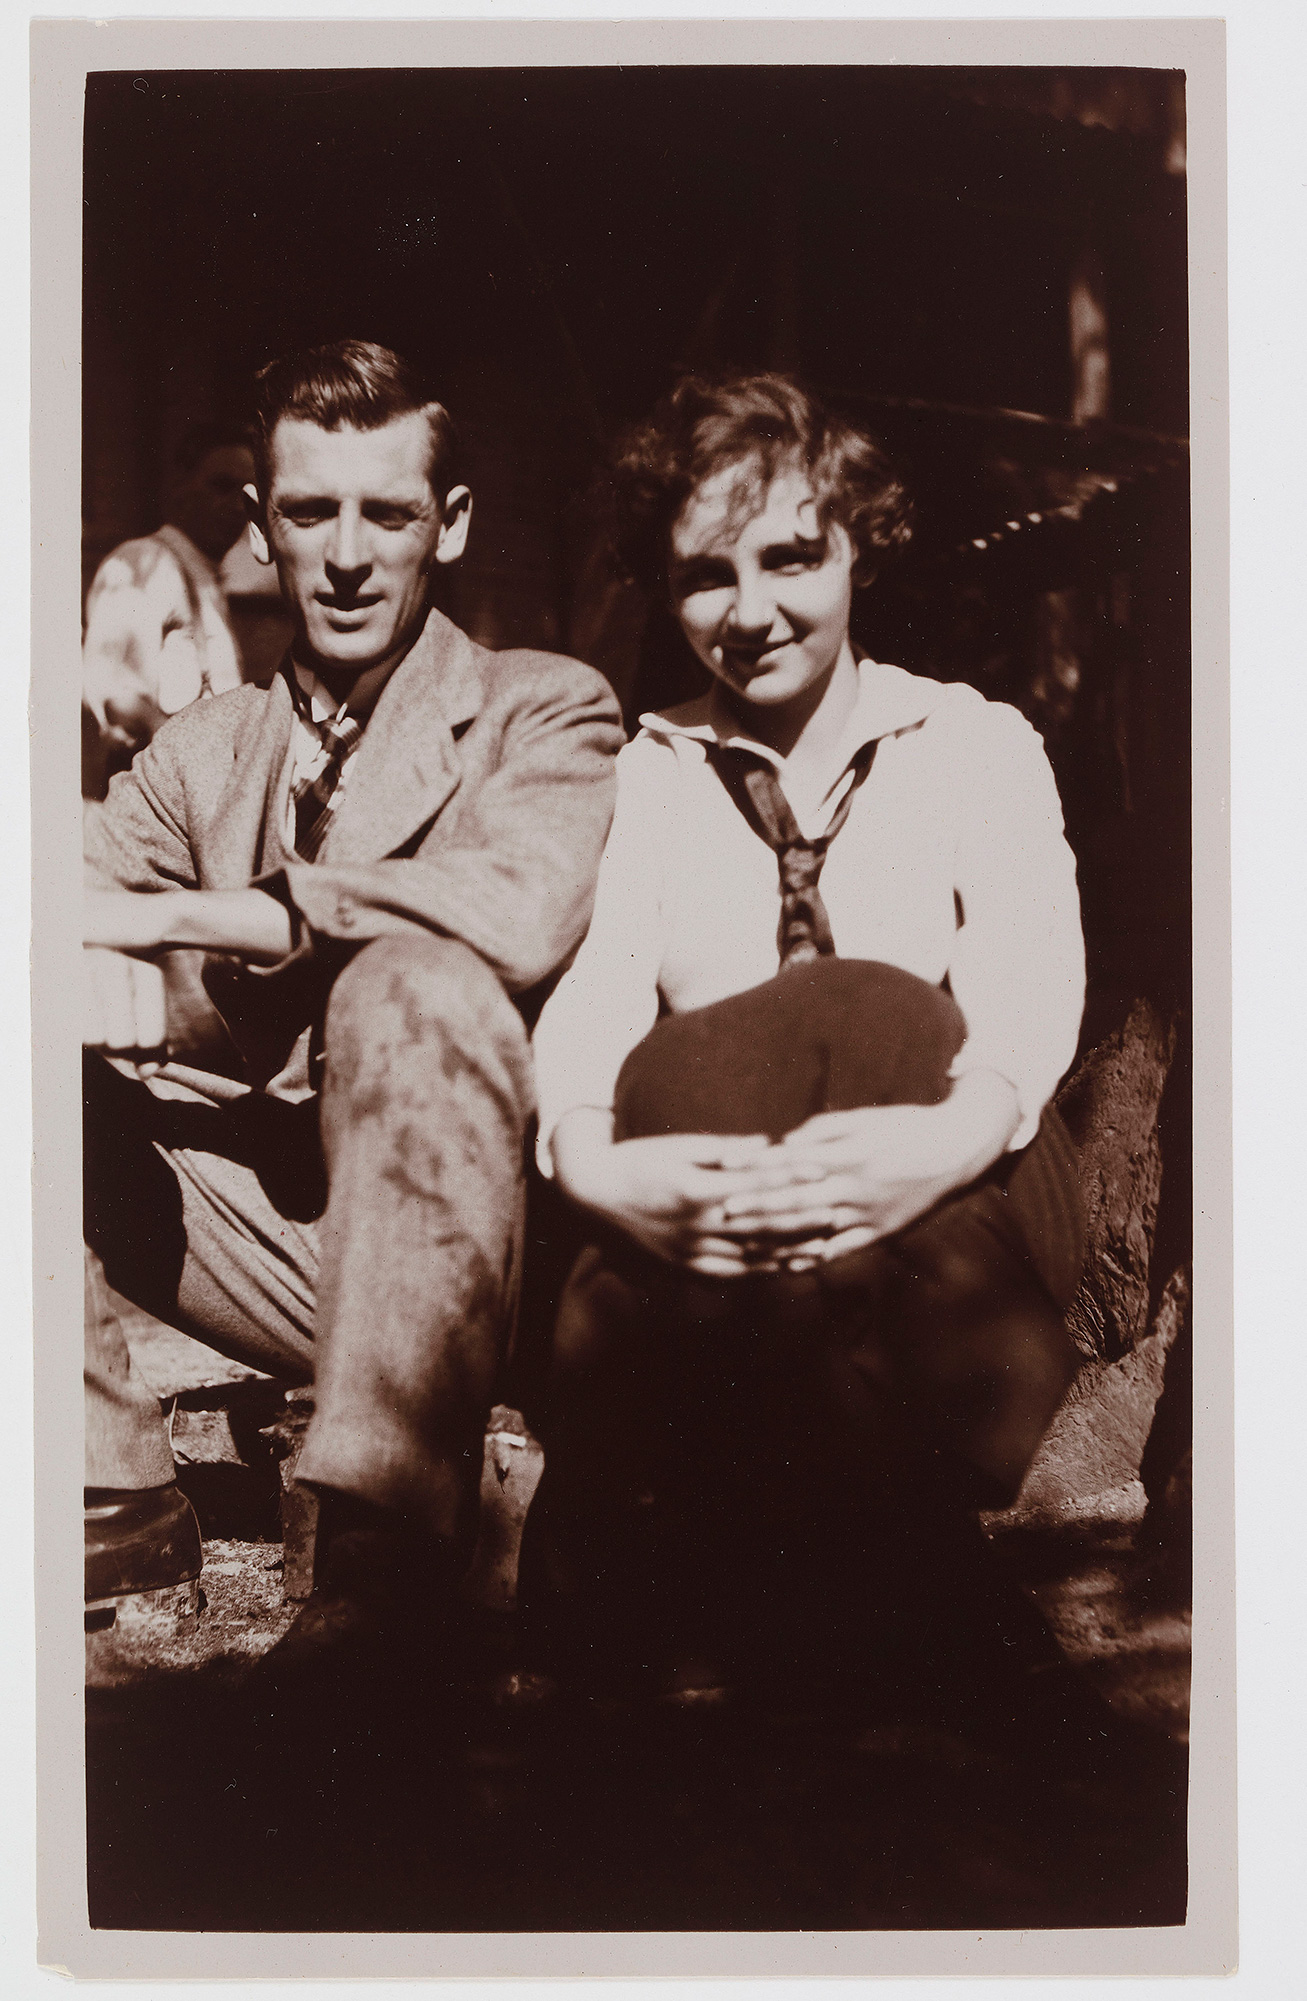 A black and white photograph of a man and a woman.